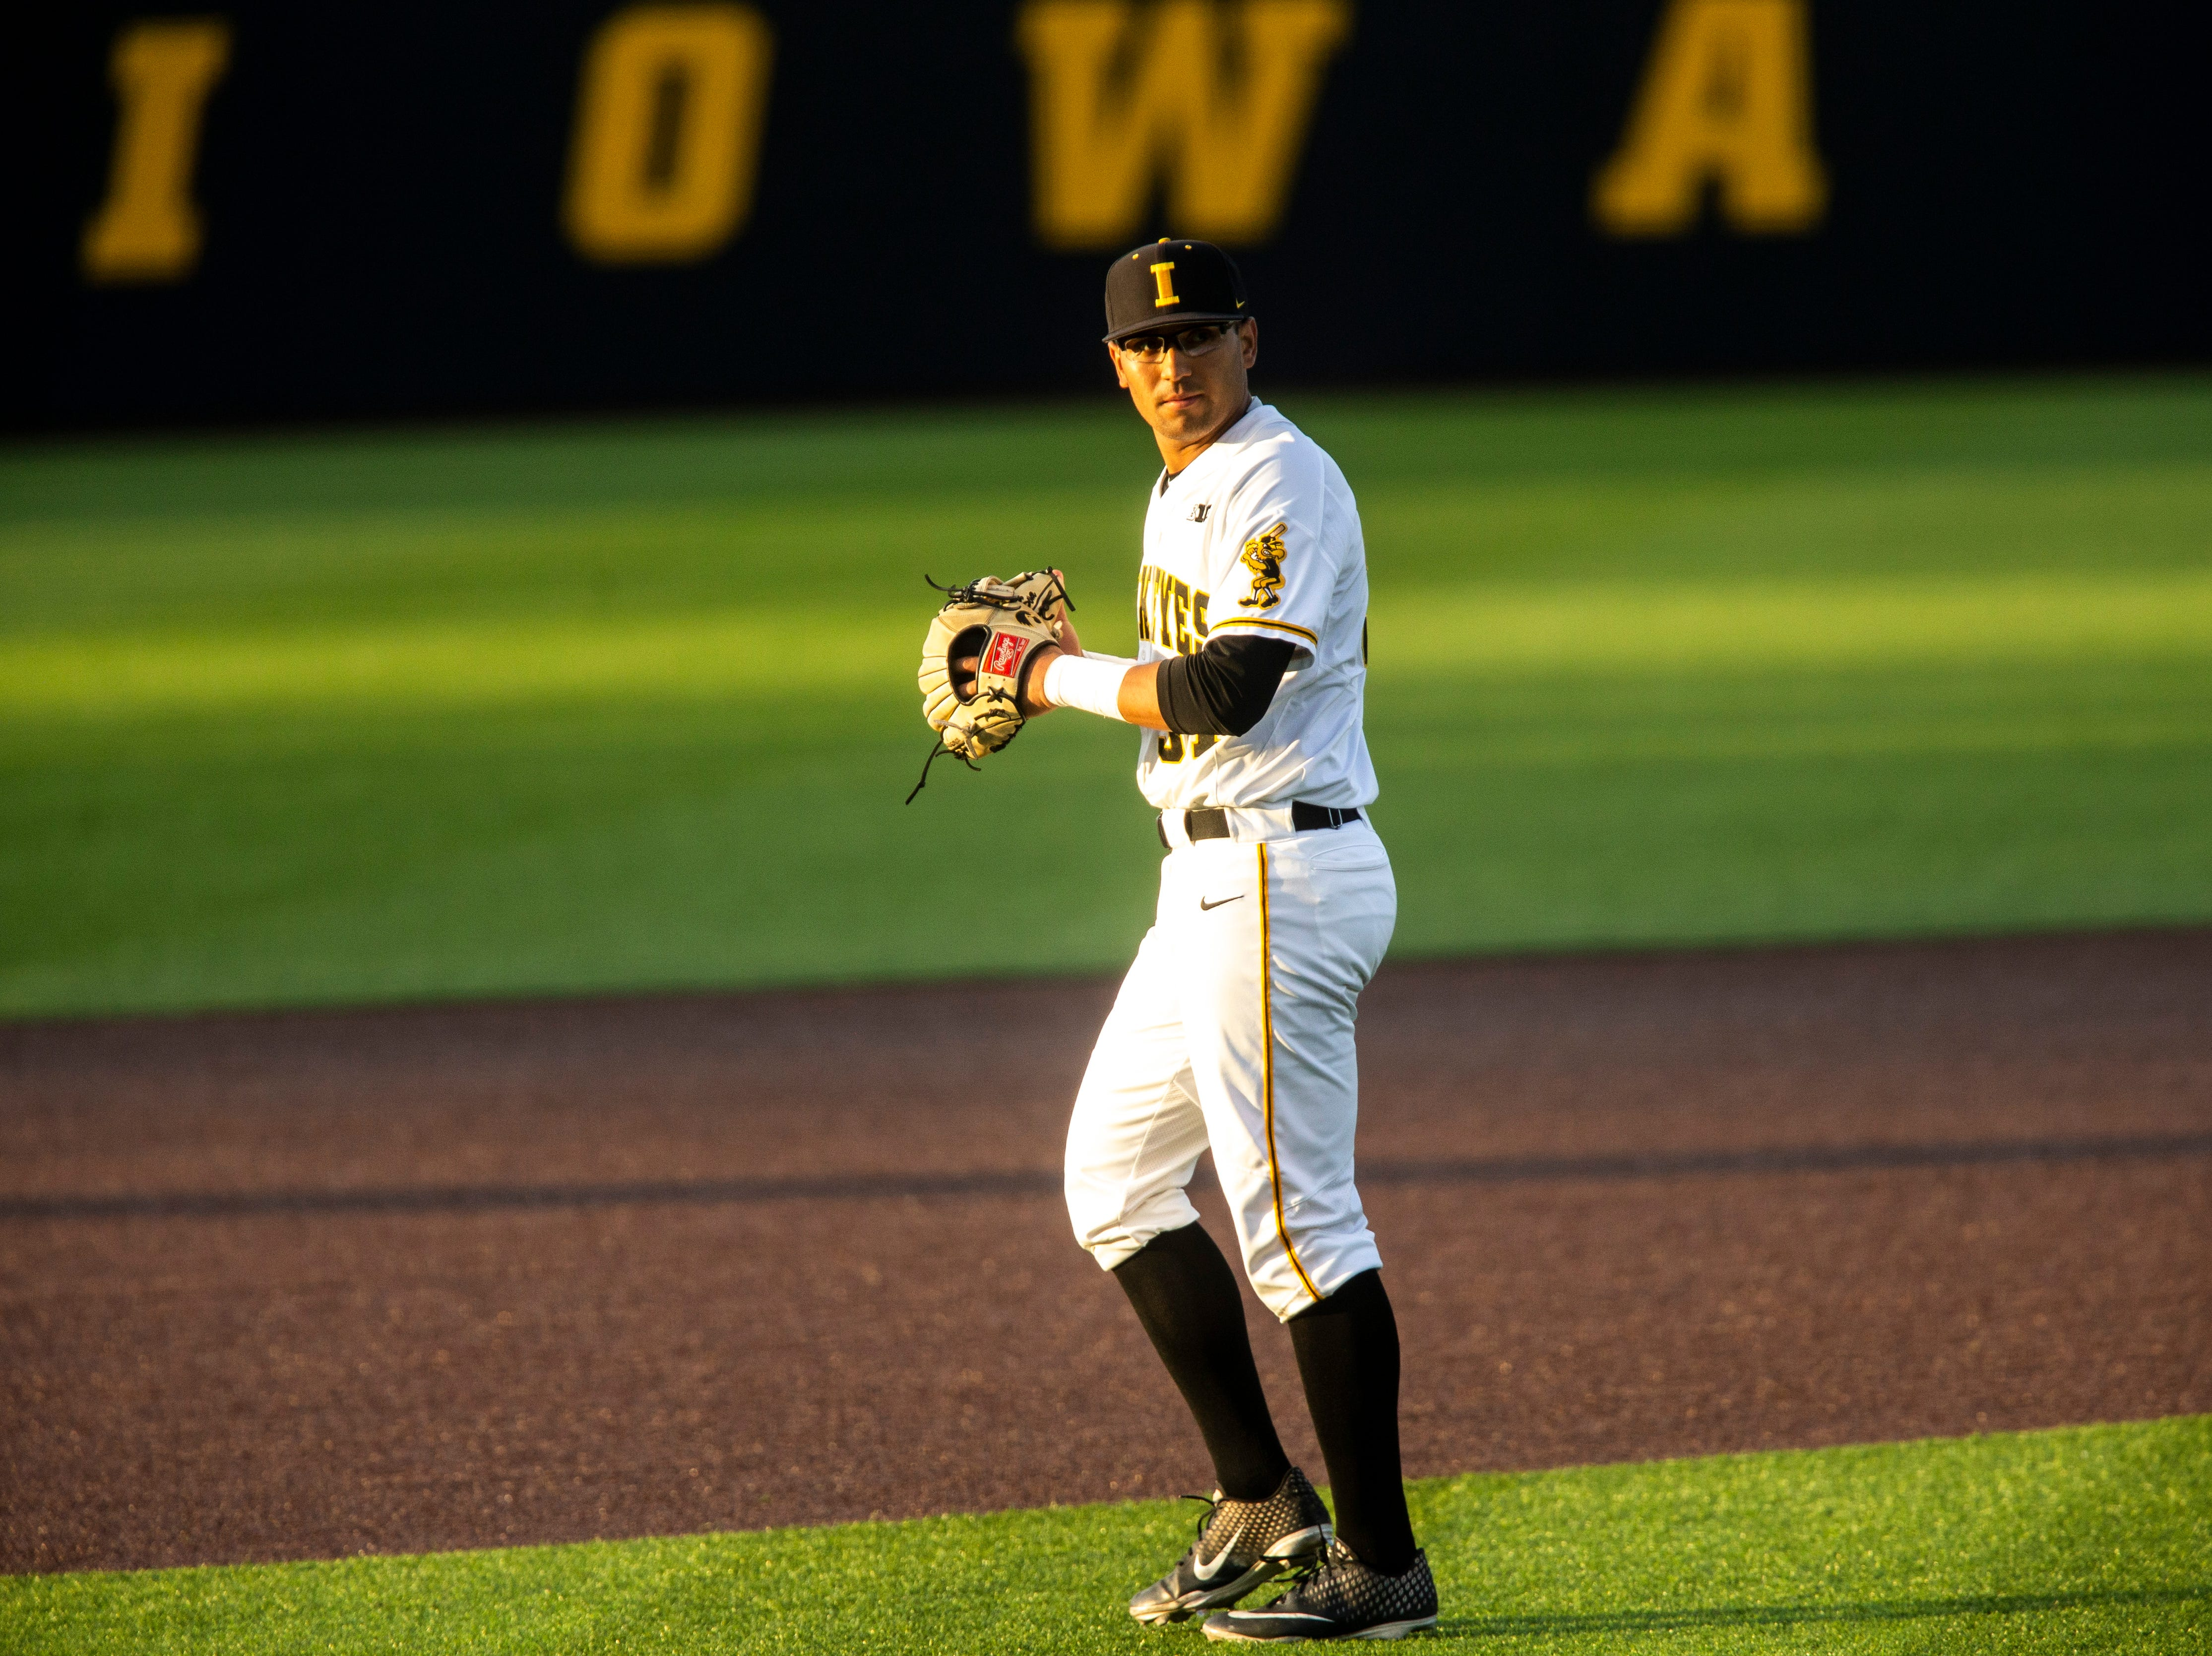 Iowa infielder Matthew Sosa (31) is pictured during NCAA non conference baseball game, Friday, May 3, 2019, at Duane Banks Field in Iowa City, Iowa.